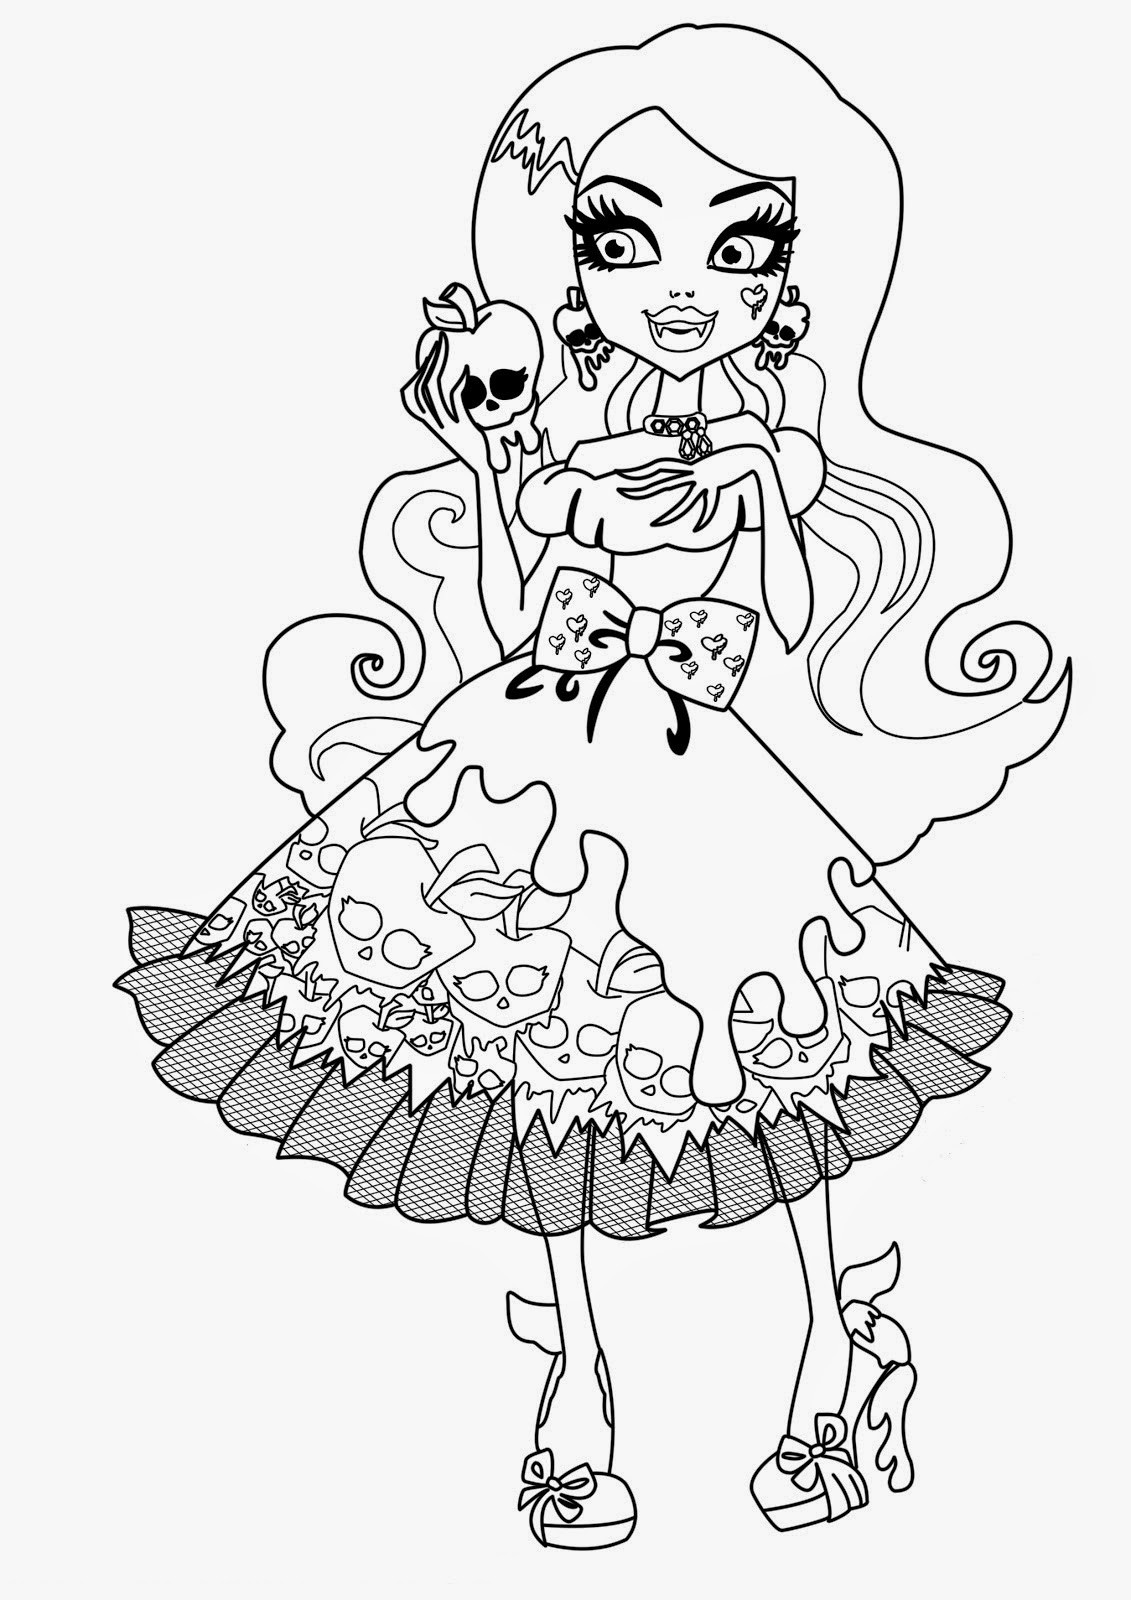 Monster High Printable Coloring Pages  Coloring Pages Monster High Coloring Pages Free and Printable